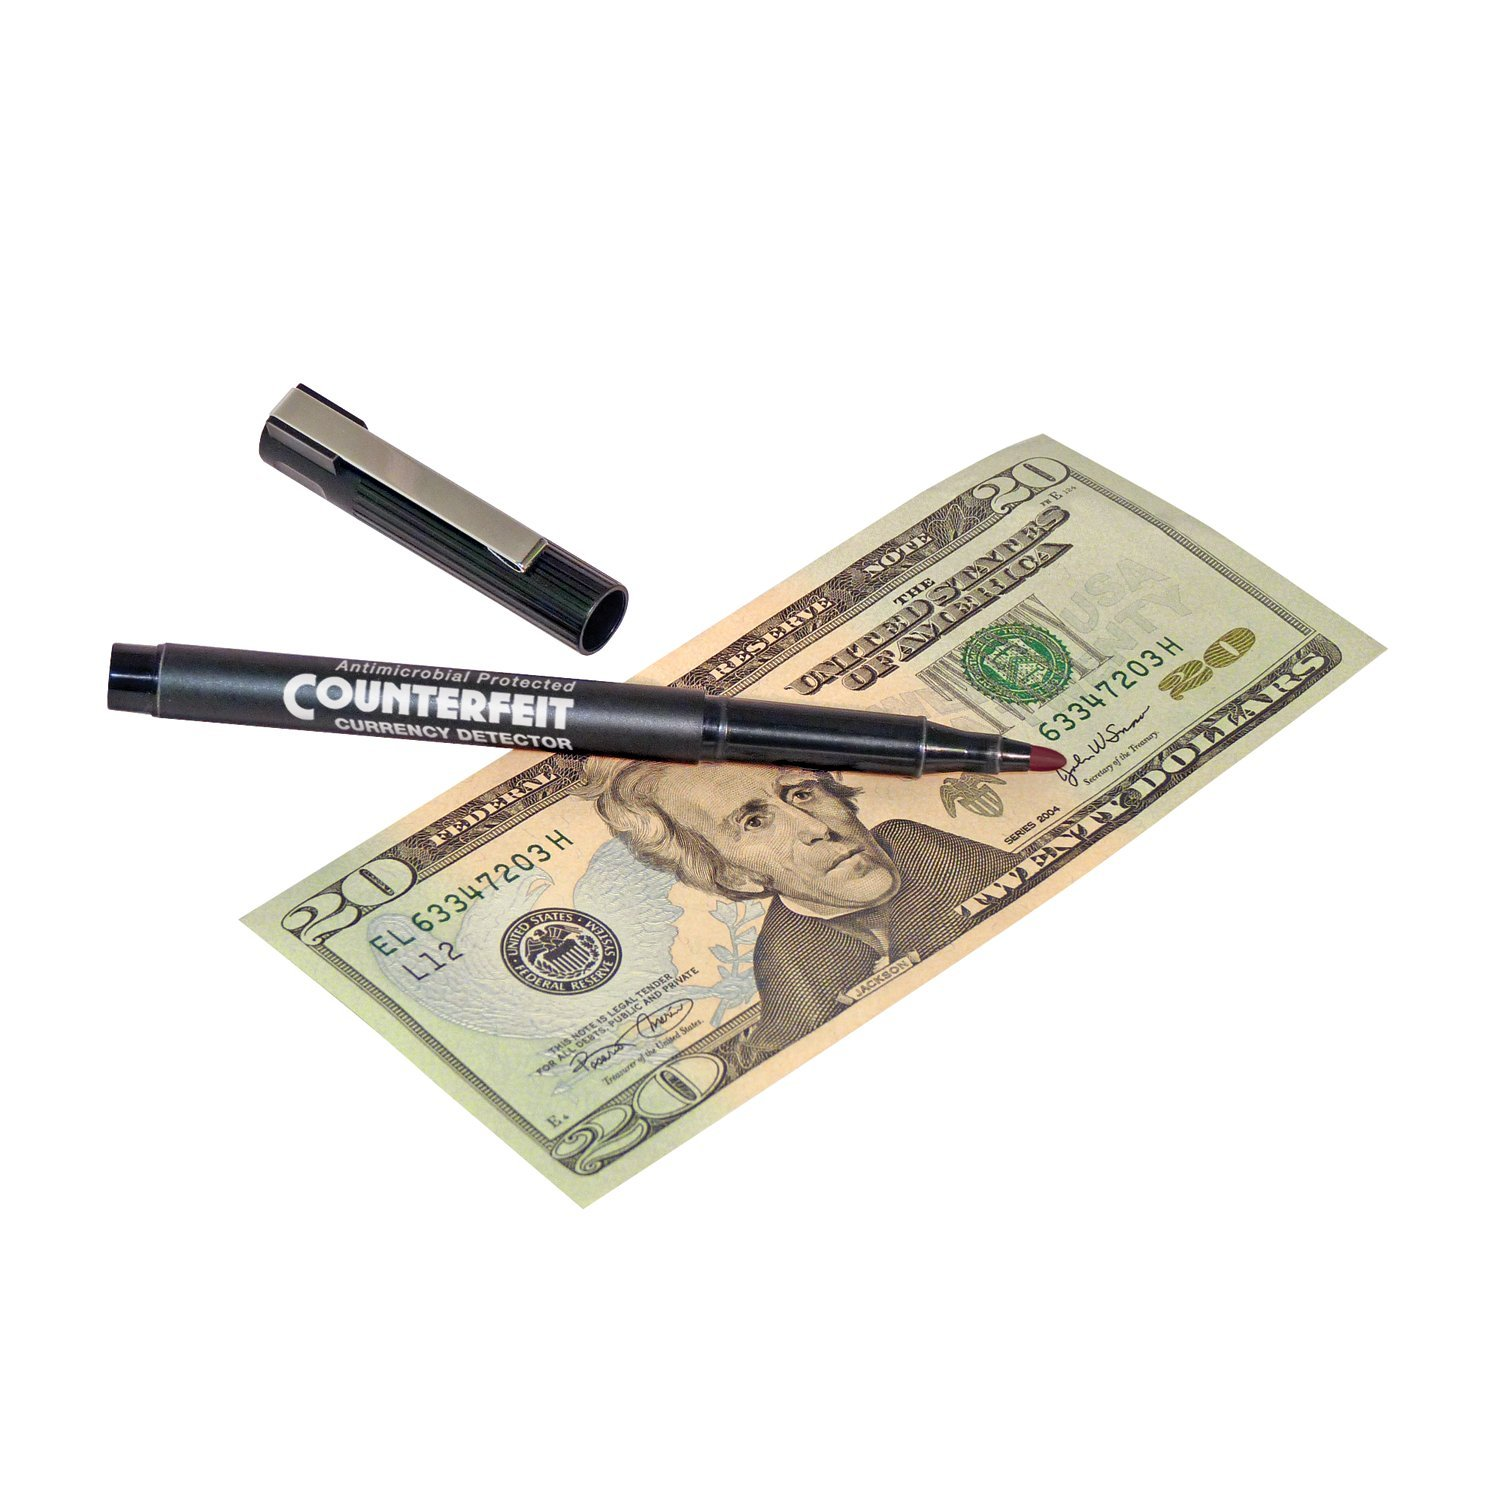 MMF Industries Counterfeit Detector Pen, 5.5 Inches, 12 Pens per Pack, Black Barrel (200045112)